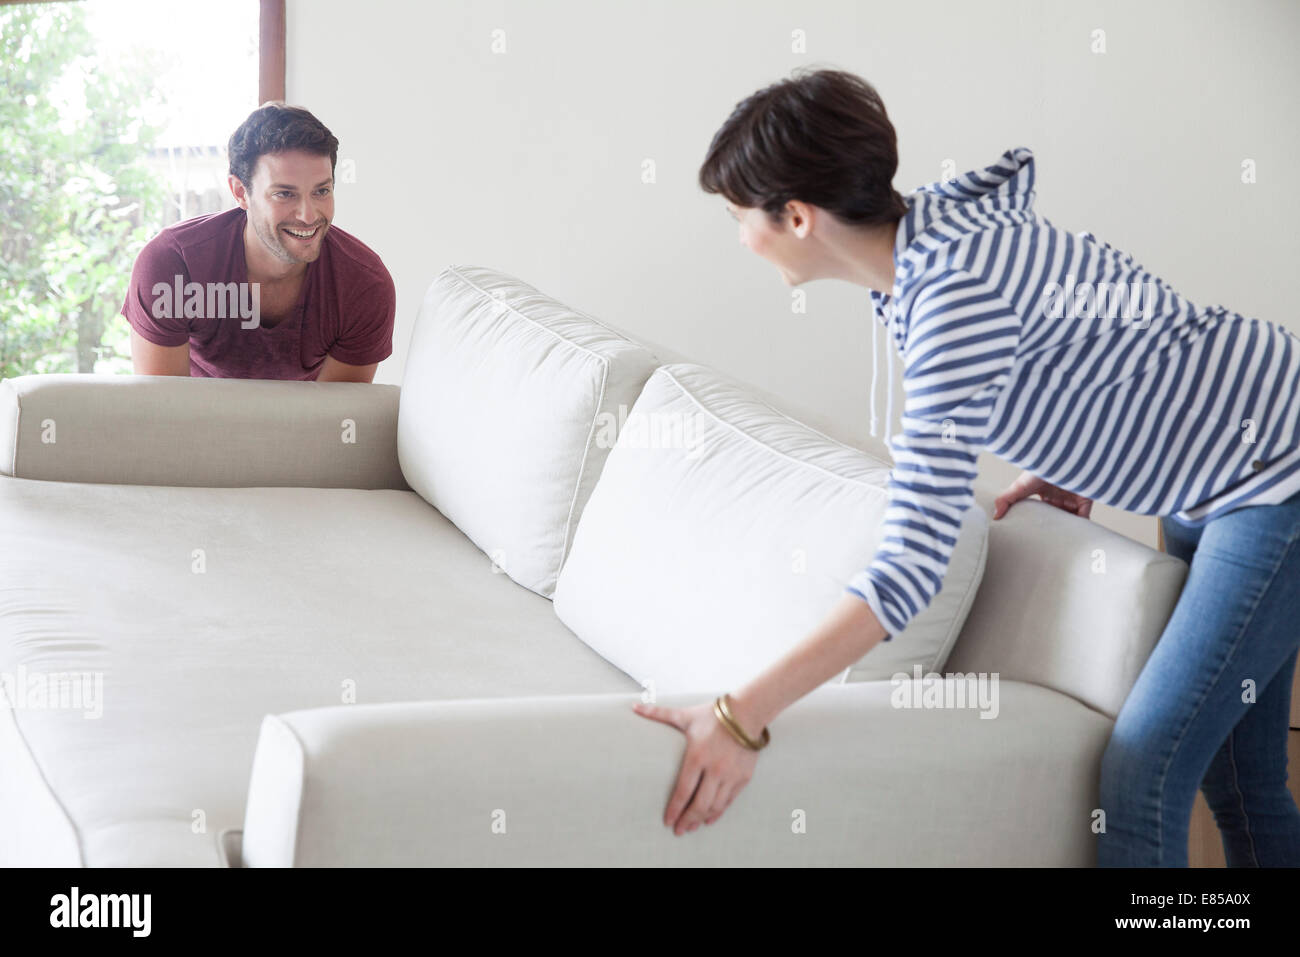 Couple moving sofa together - Stock Image